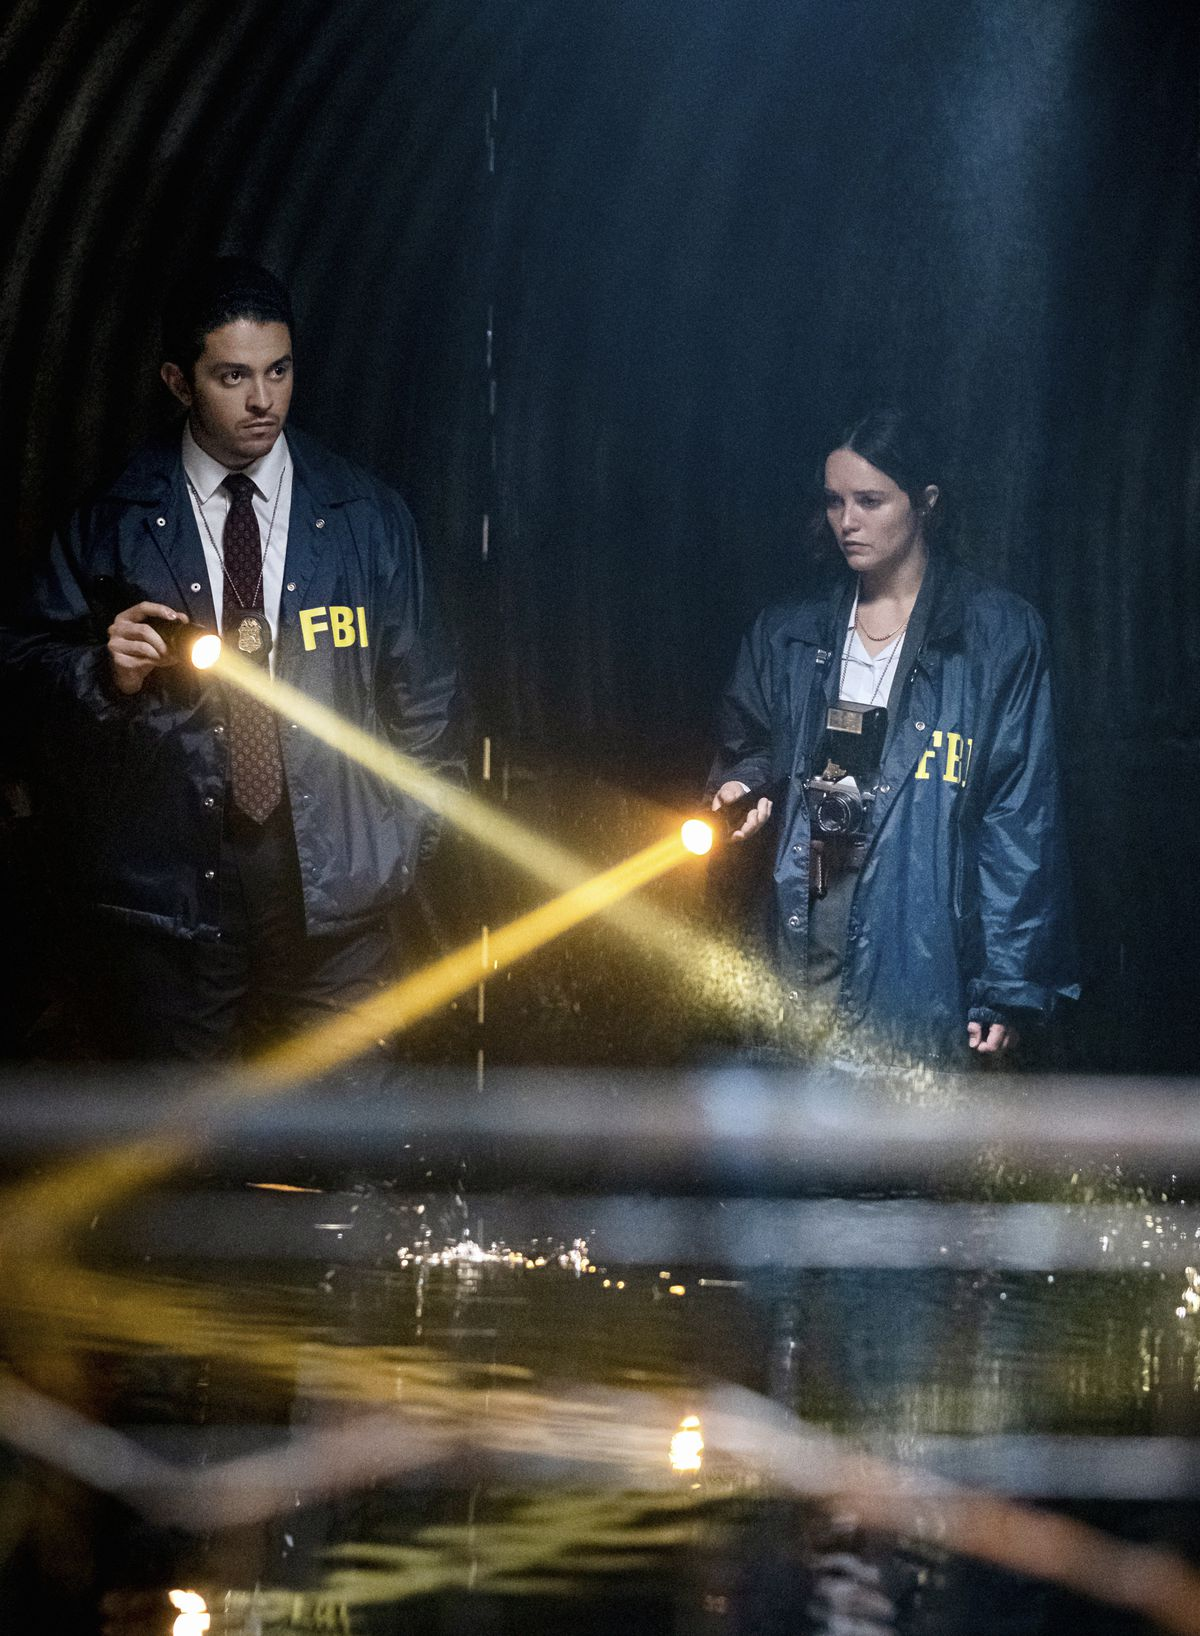 Clarice Starling and fellow FBI agent Tomas Esquivel shine flashlights over water in a dark space in Clarice.